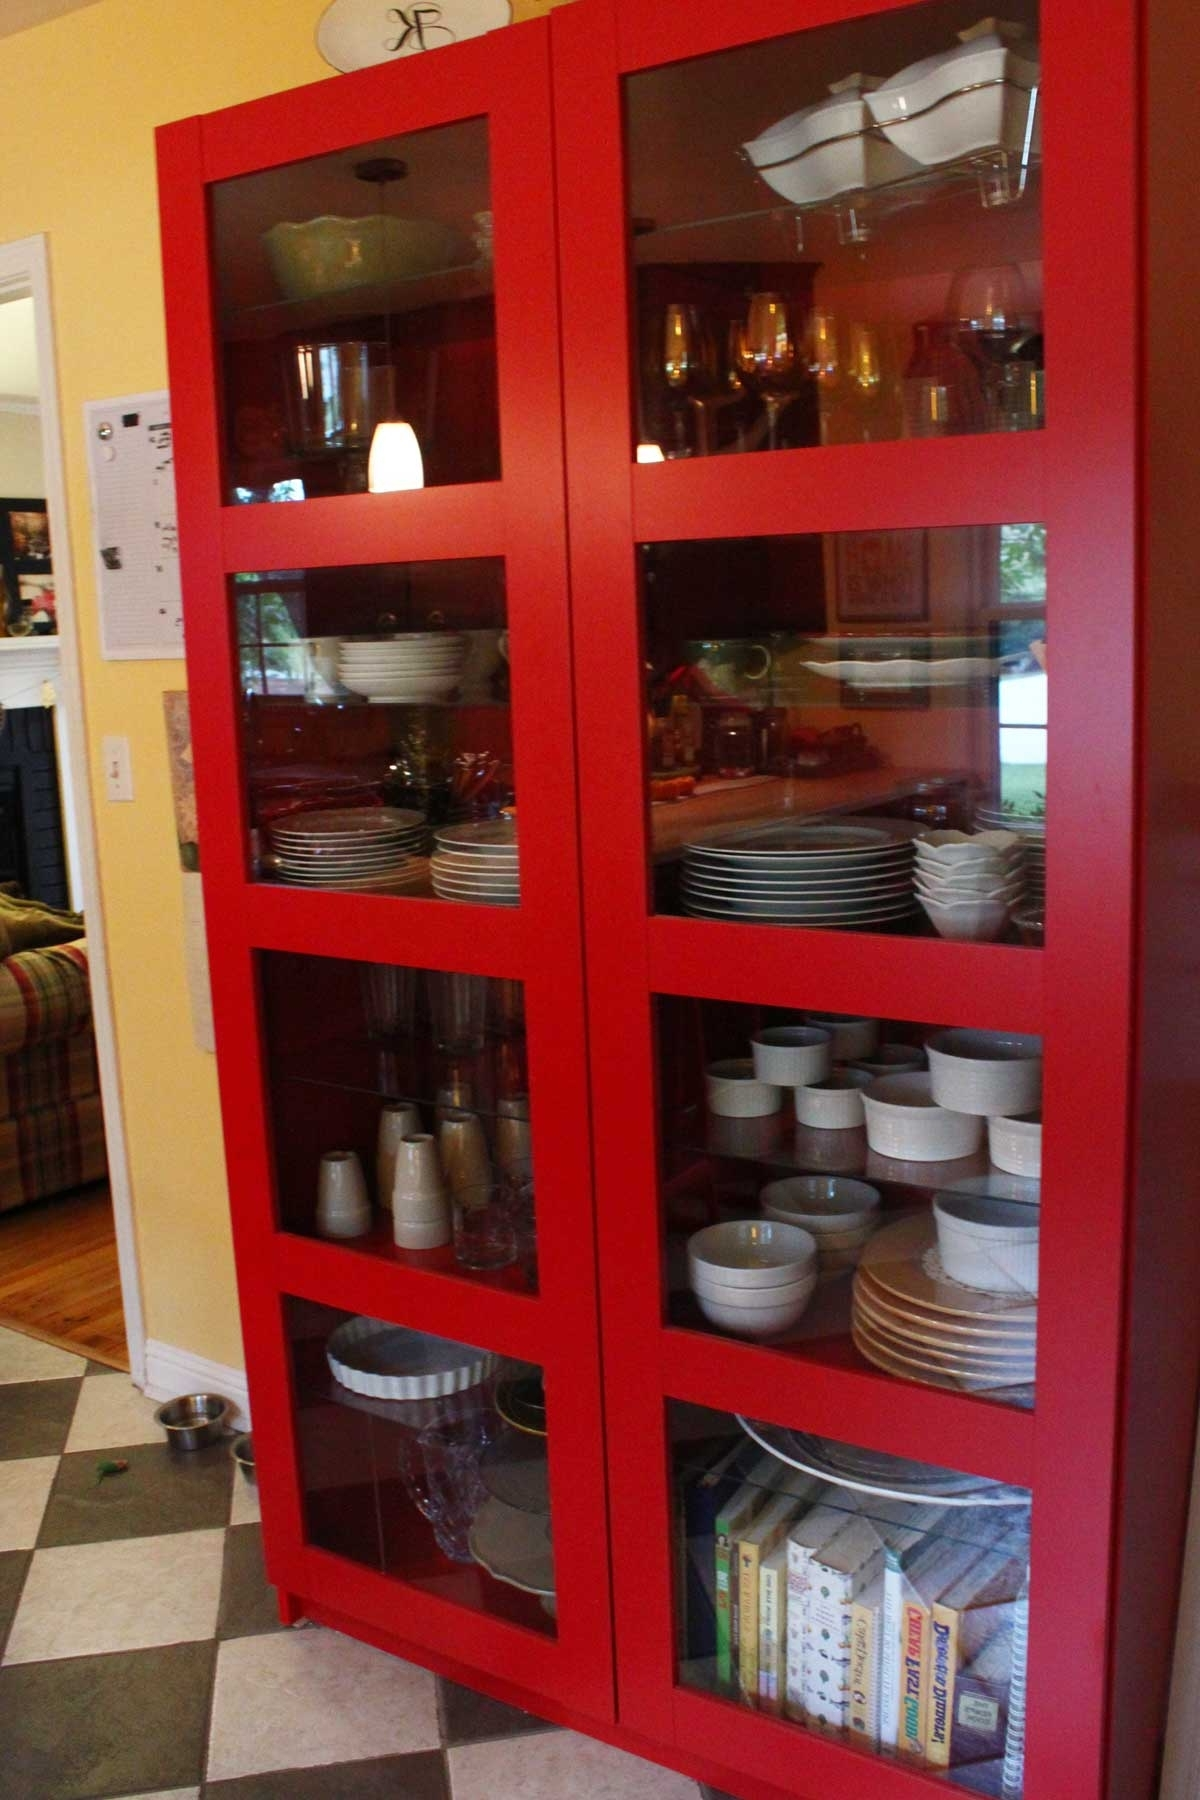 Well Known Furniture Home: Red Bookcases Teakpeter Hvidt For Soborg Sale In Red Bookcases (View 15 of 15)